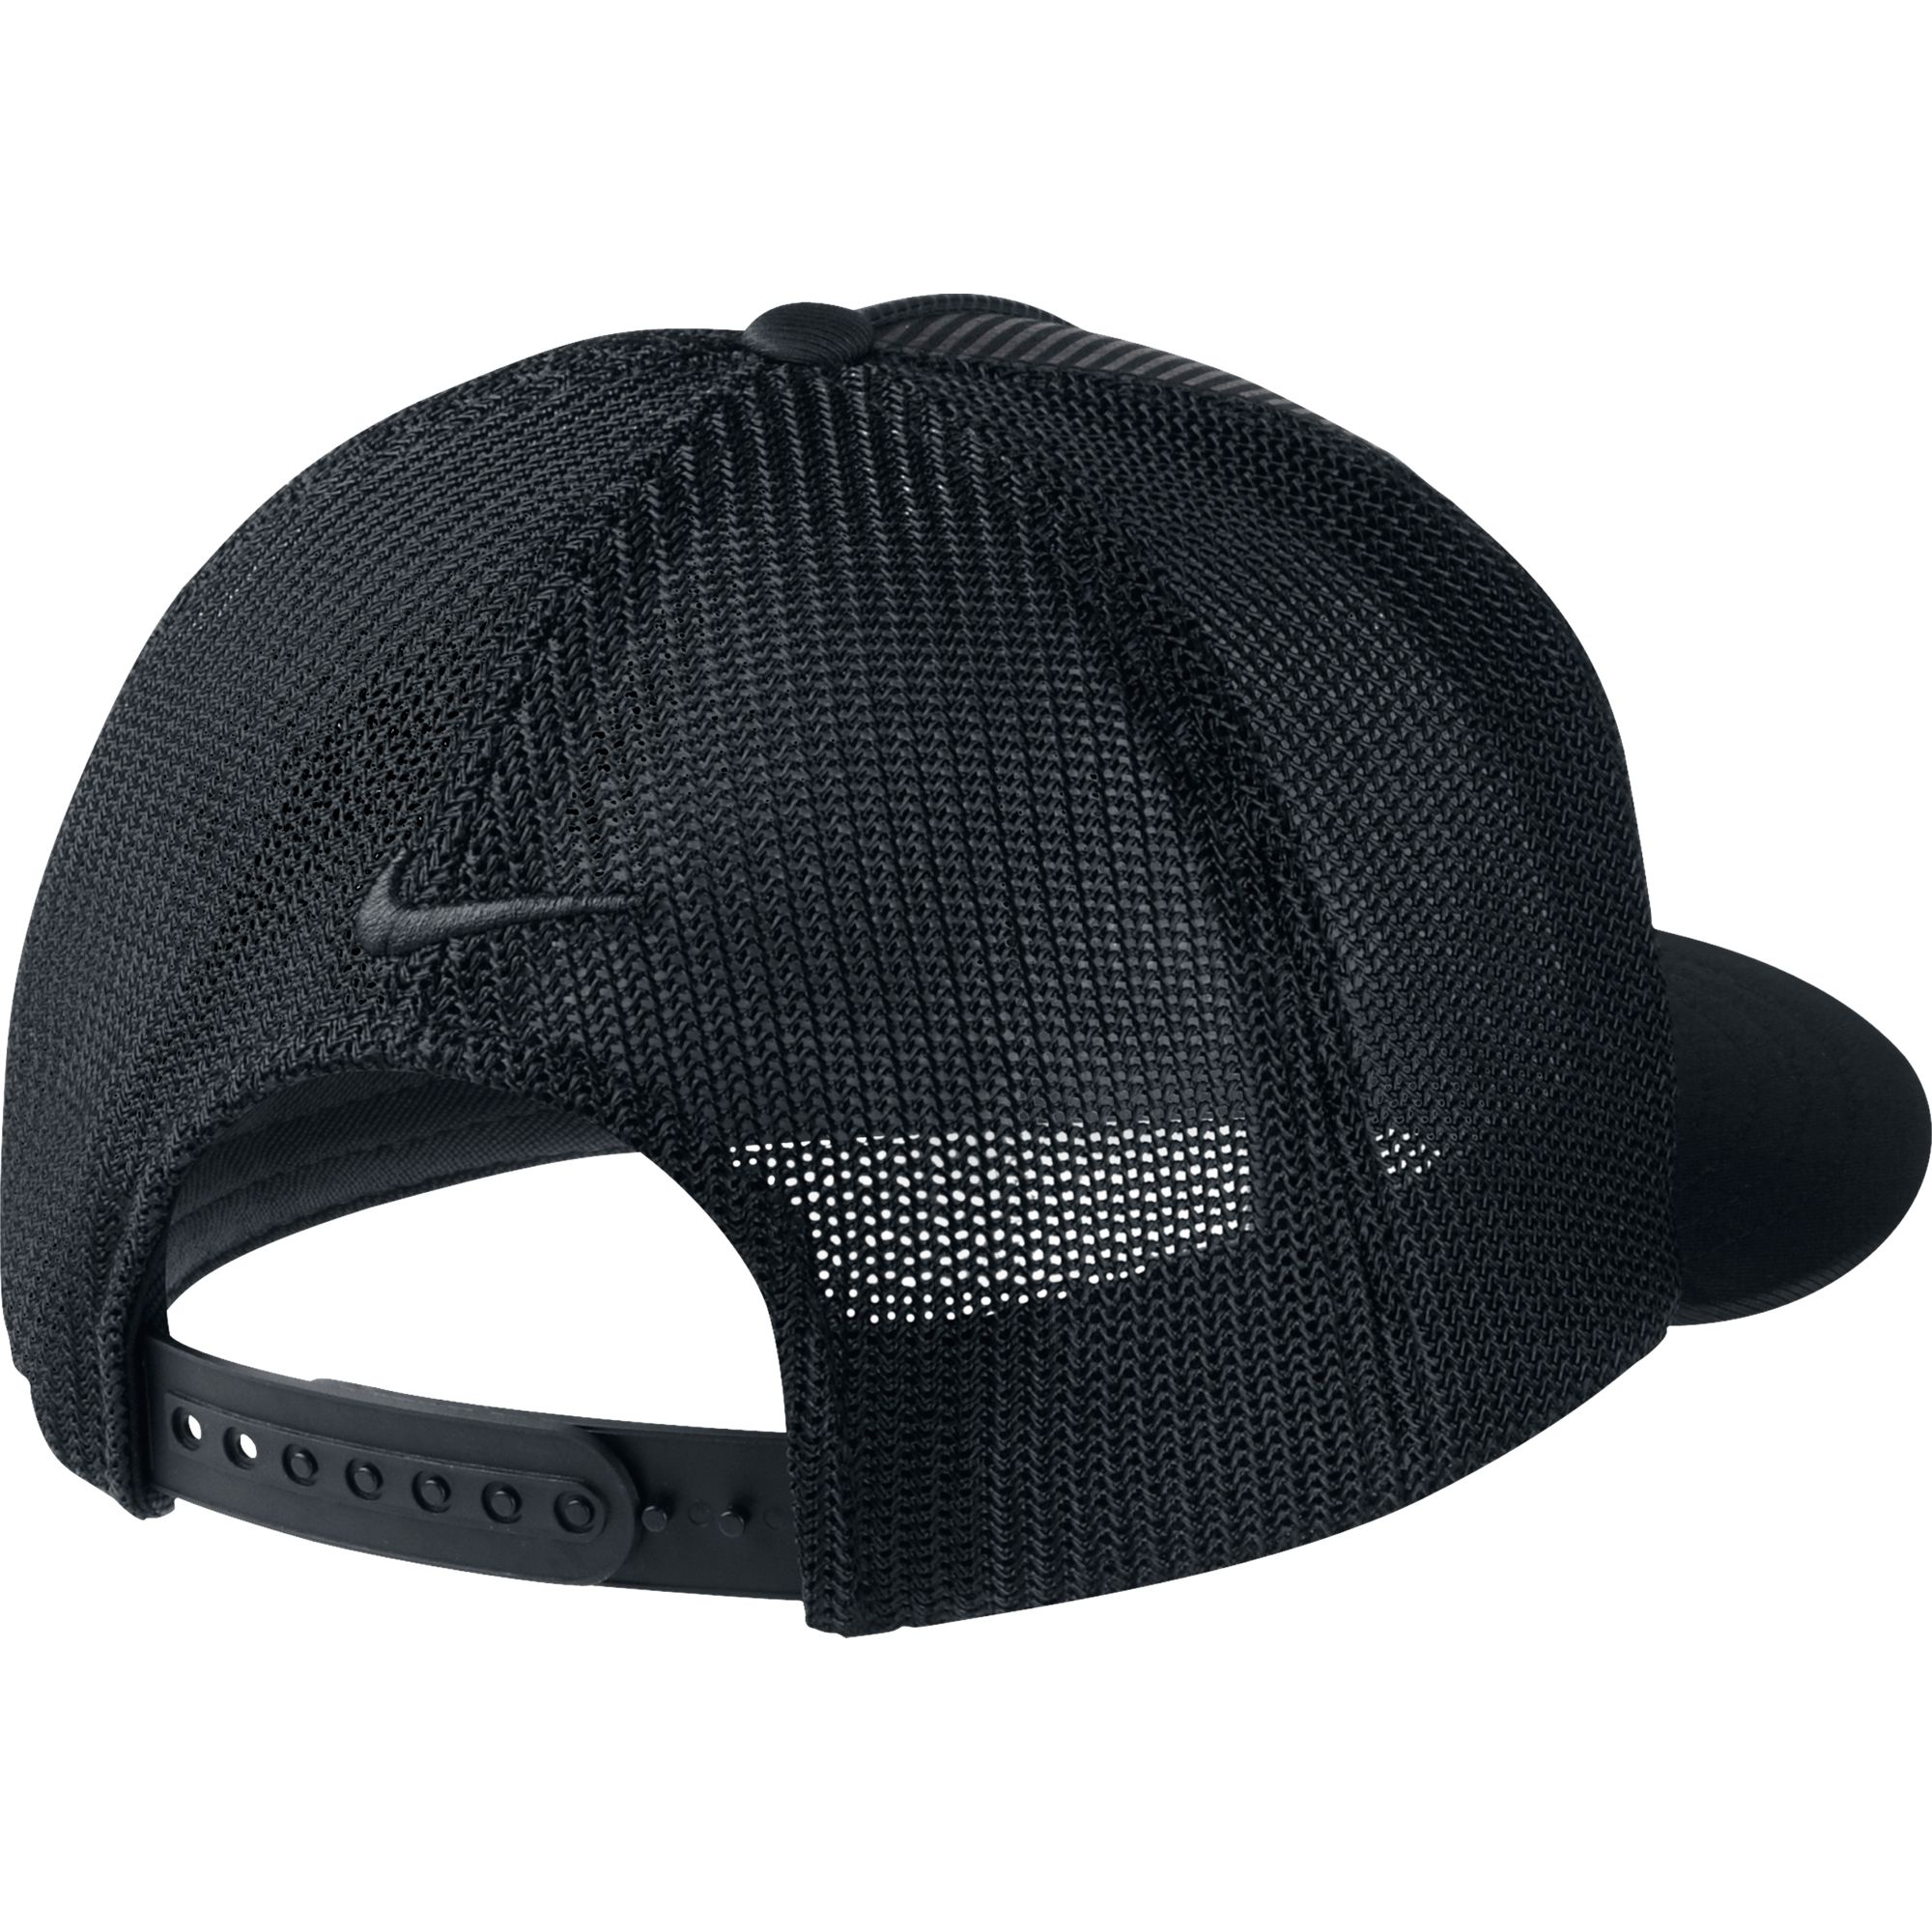 New 2014 Nike Graphic Snap Back Flat Bill Hat Cap Color